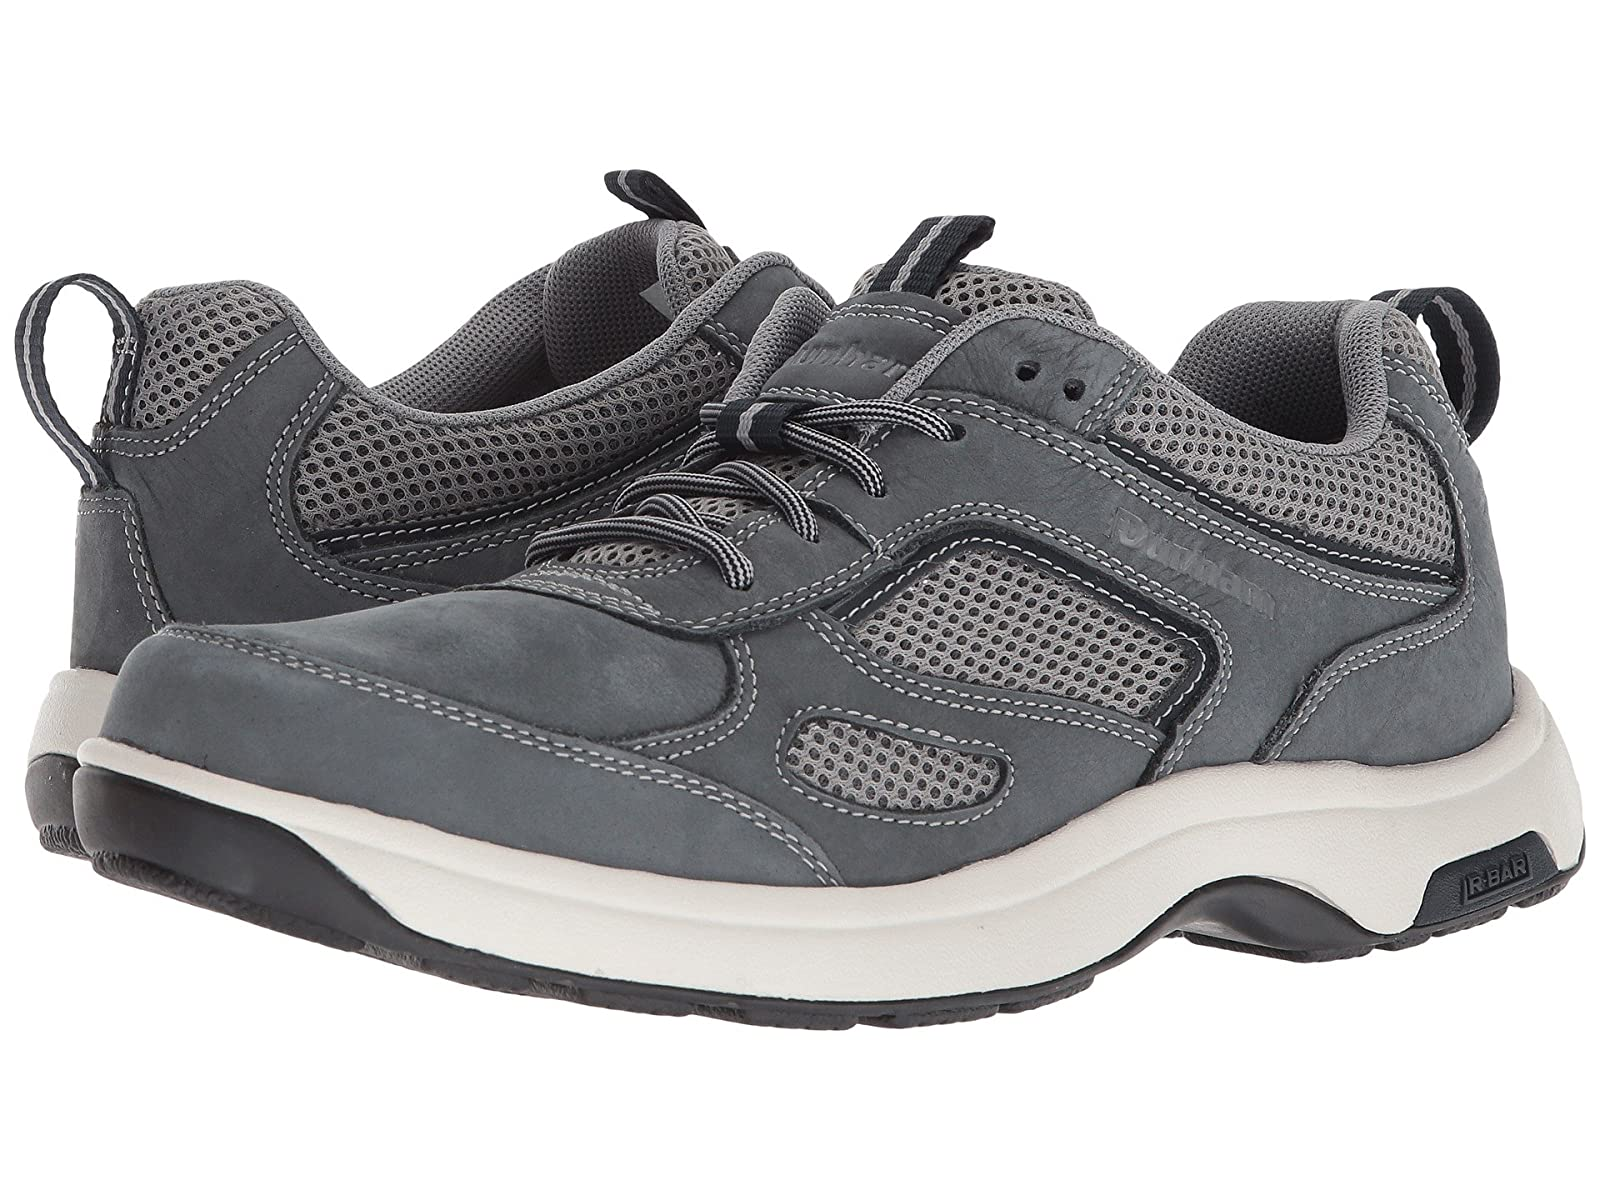 Dunham 8000 UbalAtmospheric grades have affordable shoes